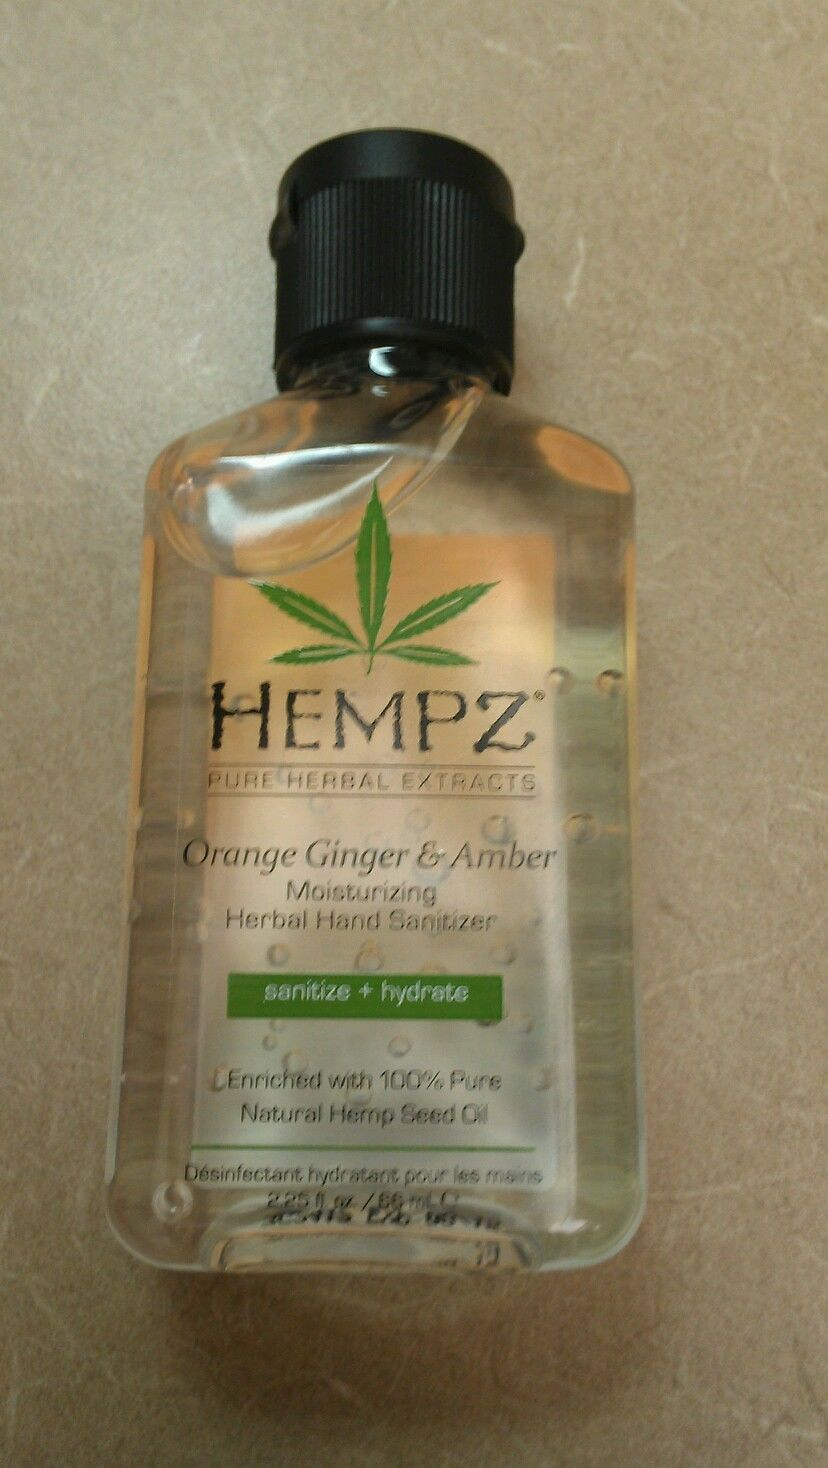 Hempz Orange Ginger Amber Moisturizing Herbal Hand Sanitizer 2